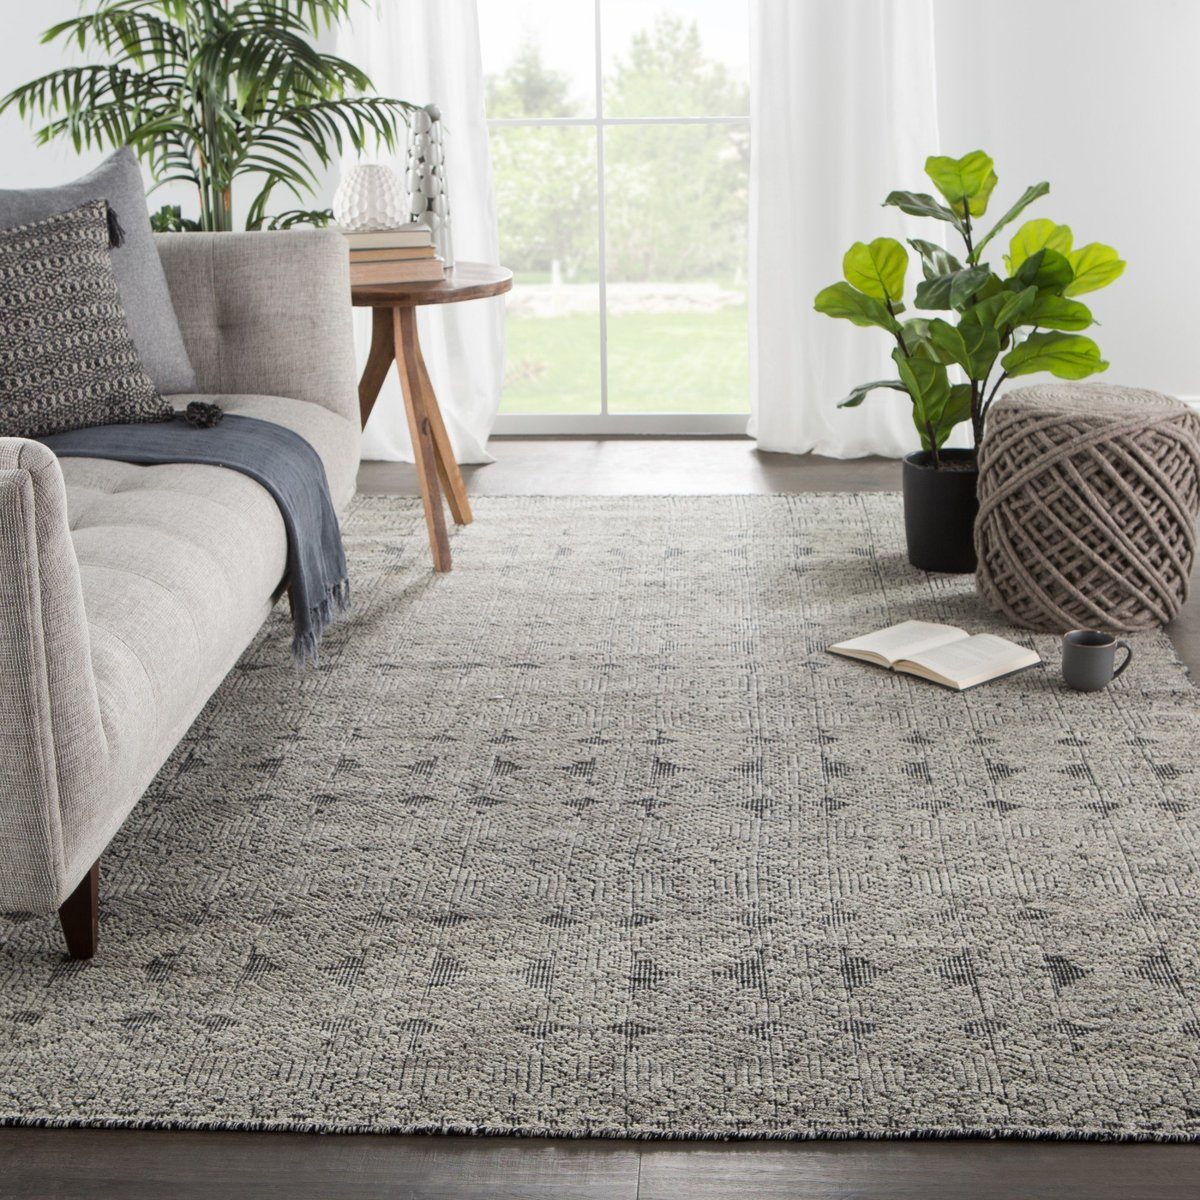 Playing with Grey Living Room Ideas